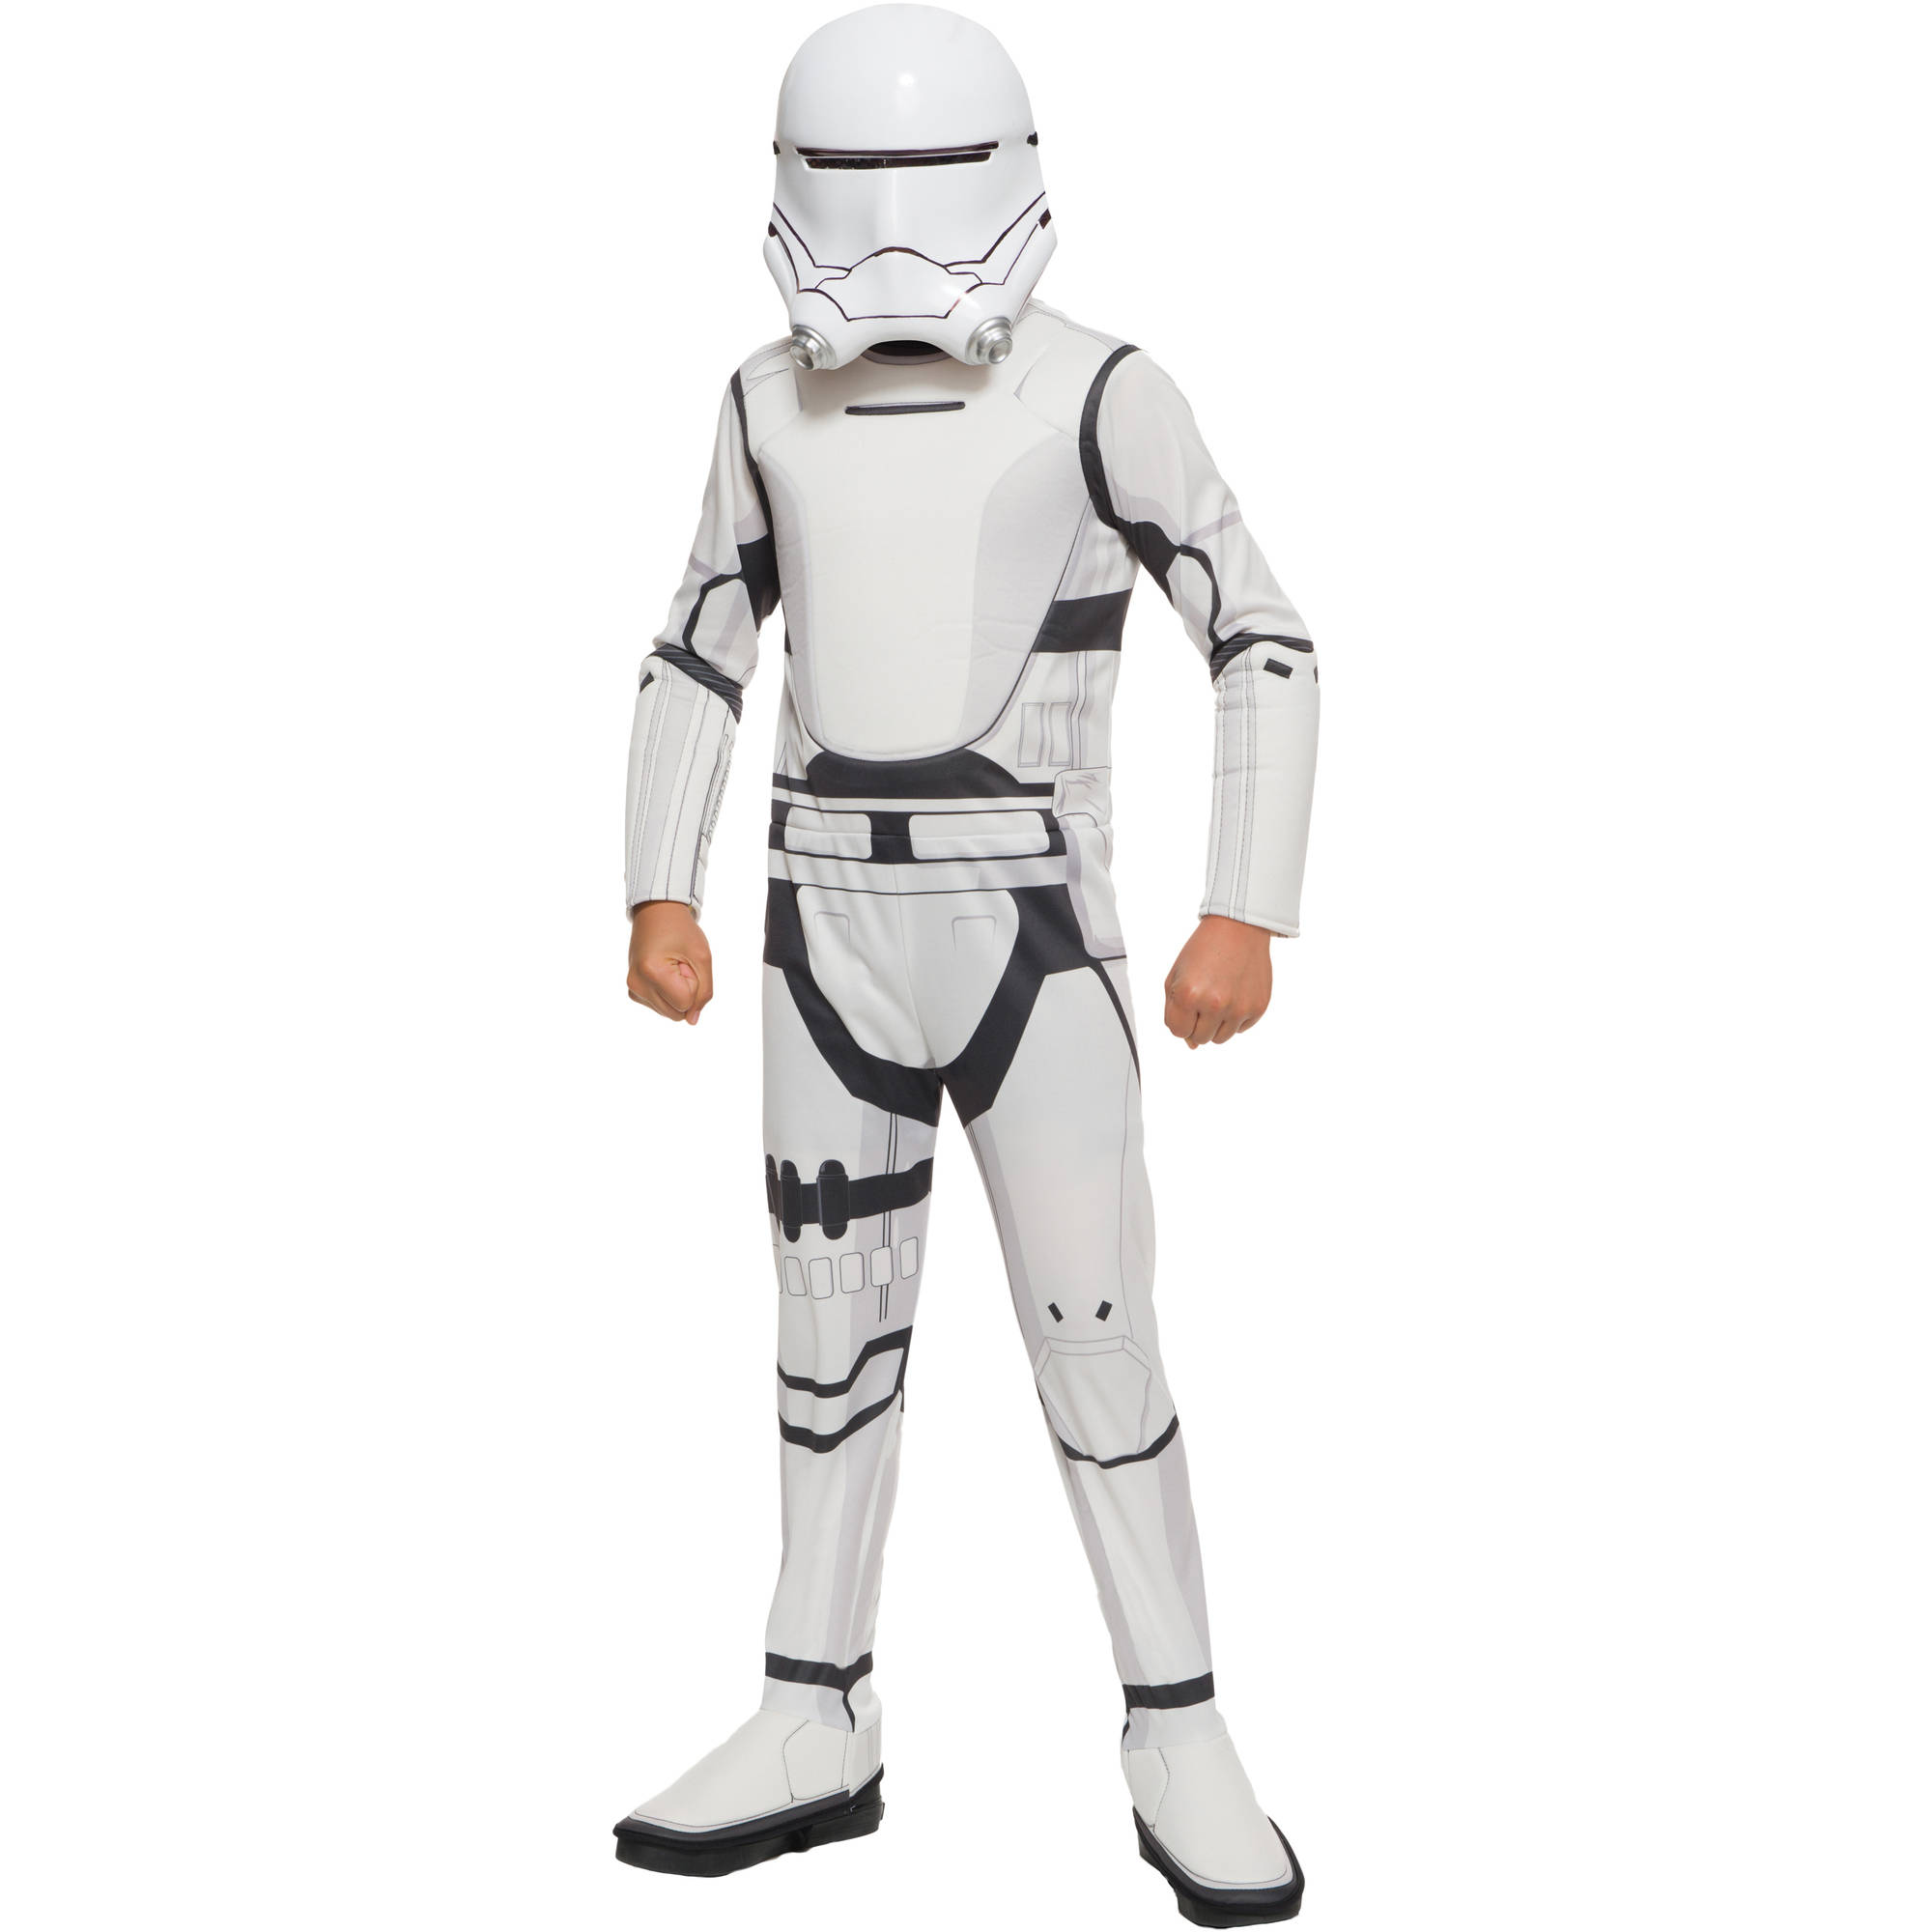 Star Wars Episode 7 Flame Trooper Child Dress Up / Role Play Costume  sc 1 st  Walmart & Star Wars Episode 7 Flame Trooper Child Dress Up / Role Play Costume ...